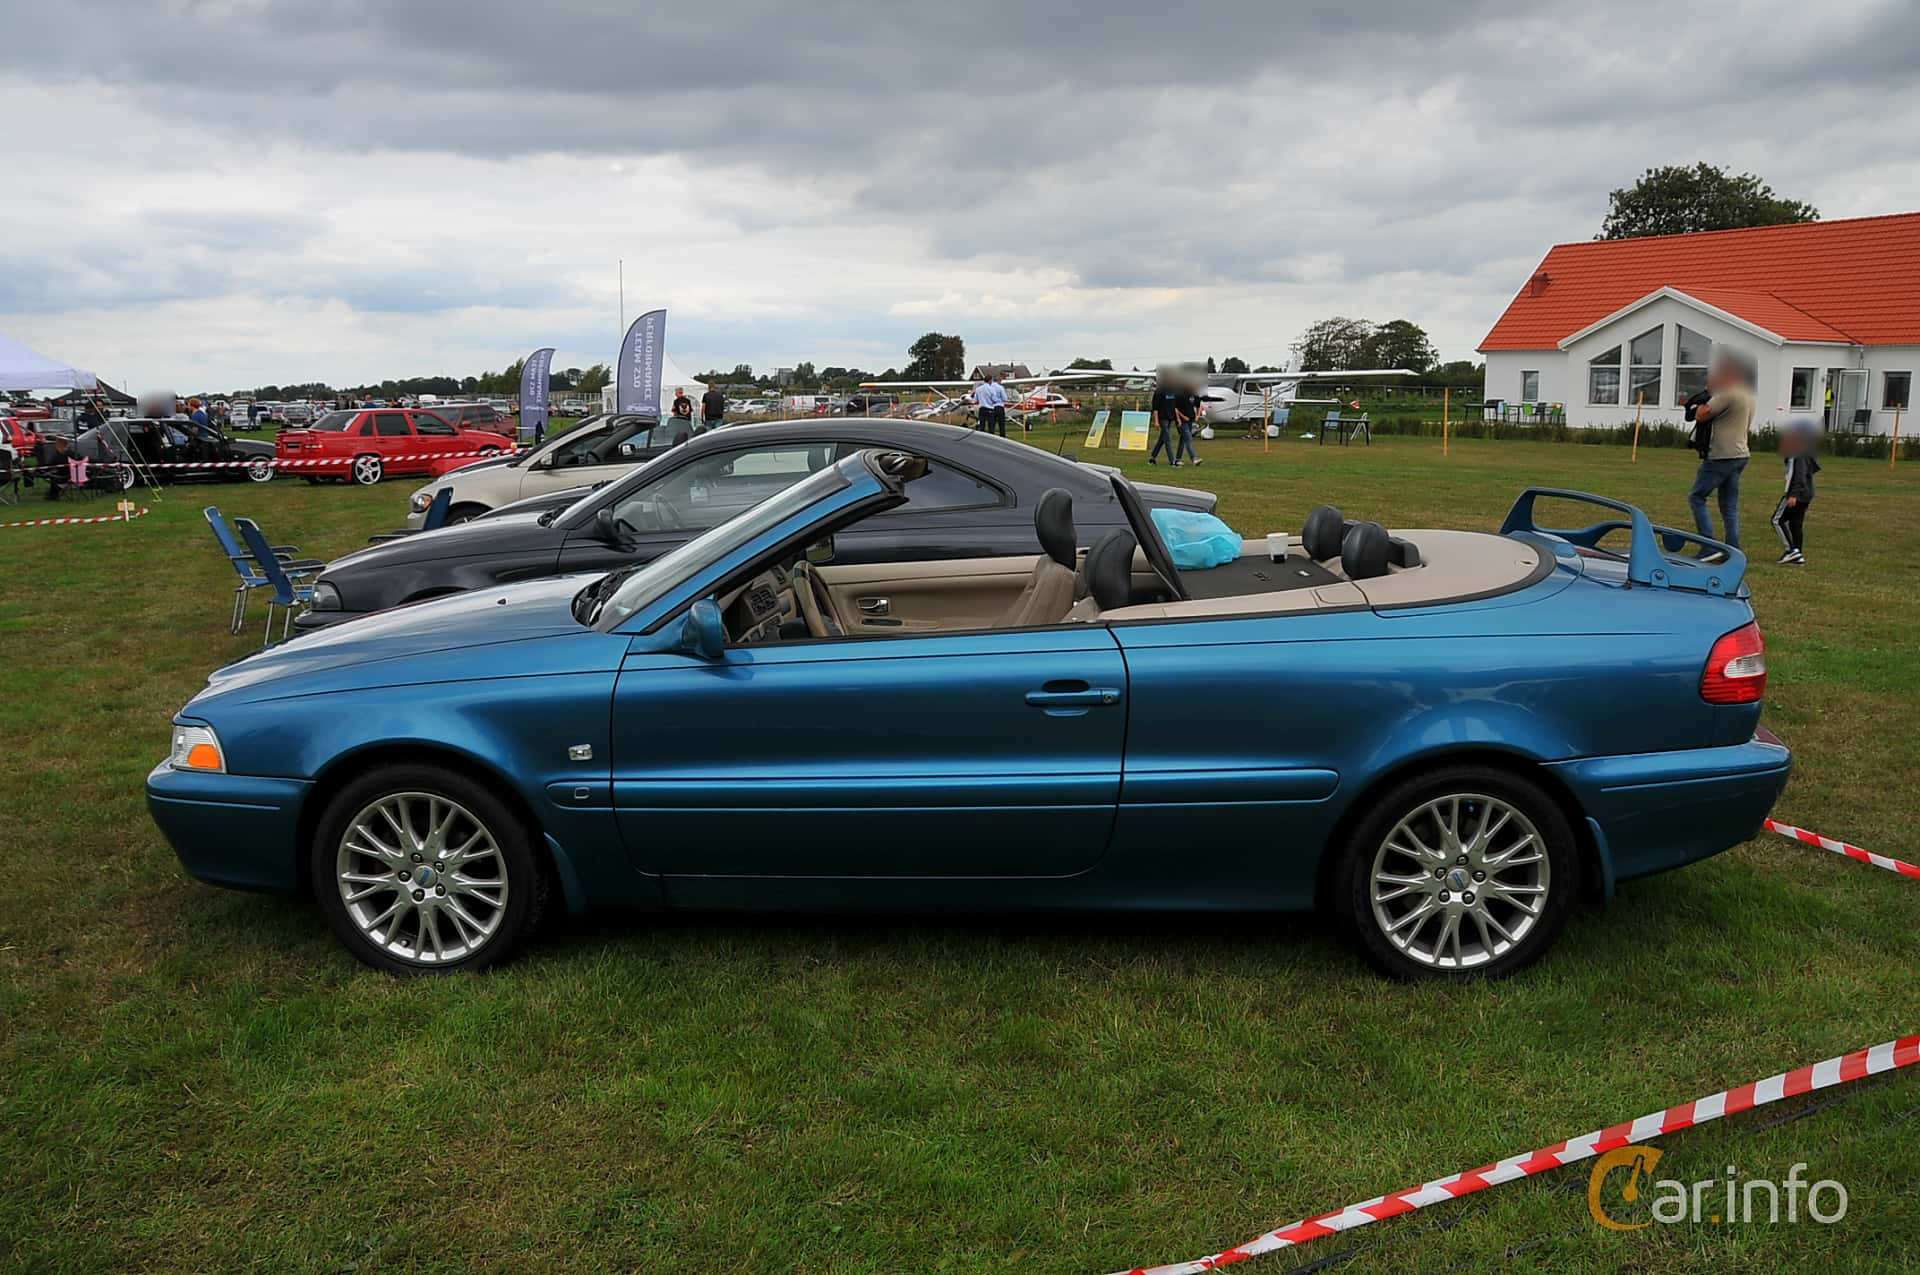 5 images of volvo c70 cabriolet 2 4t manual 193hp 1999 by gno rh car info 1999 volvo v70 owners manual 1999 volvo c70 convertible owners manual